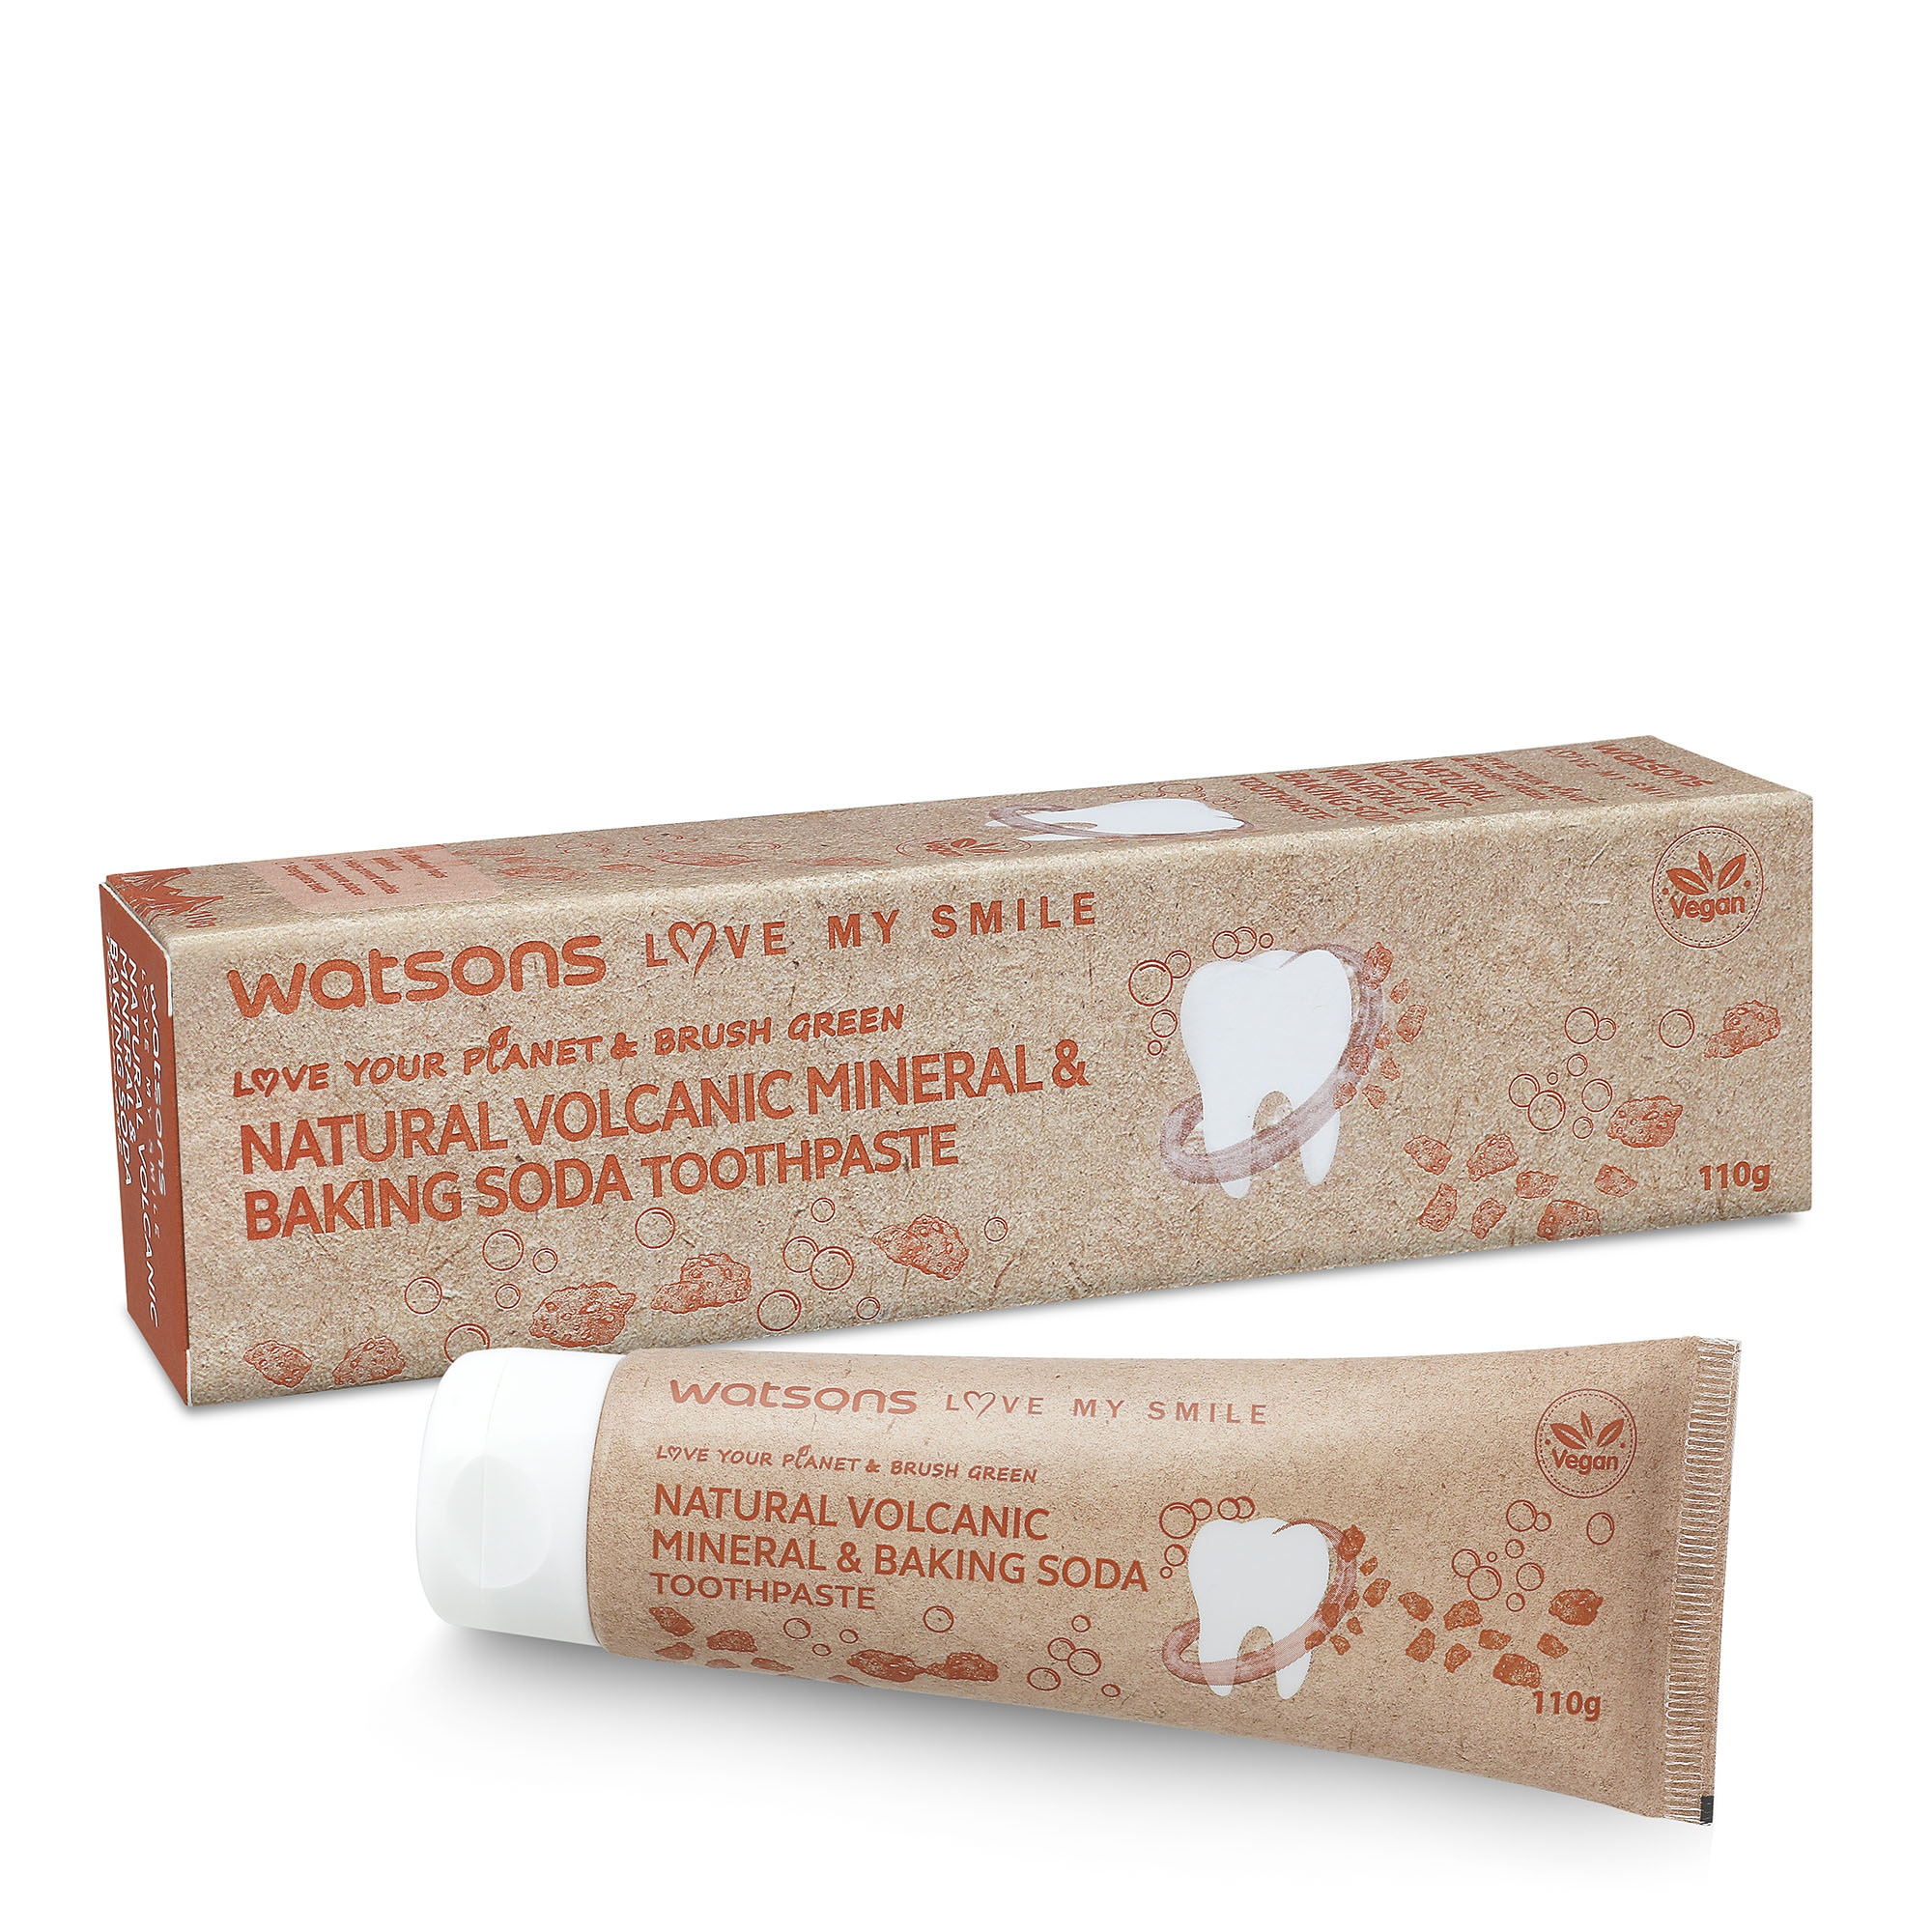 WATSONSLove my Smile Natural Volcanic Bakingsoda Toothpaste 110G,Toothpaste-